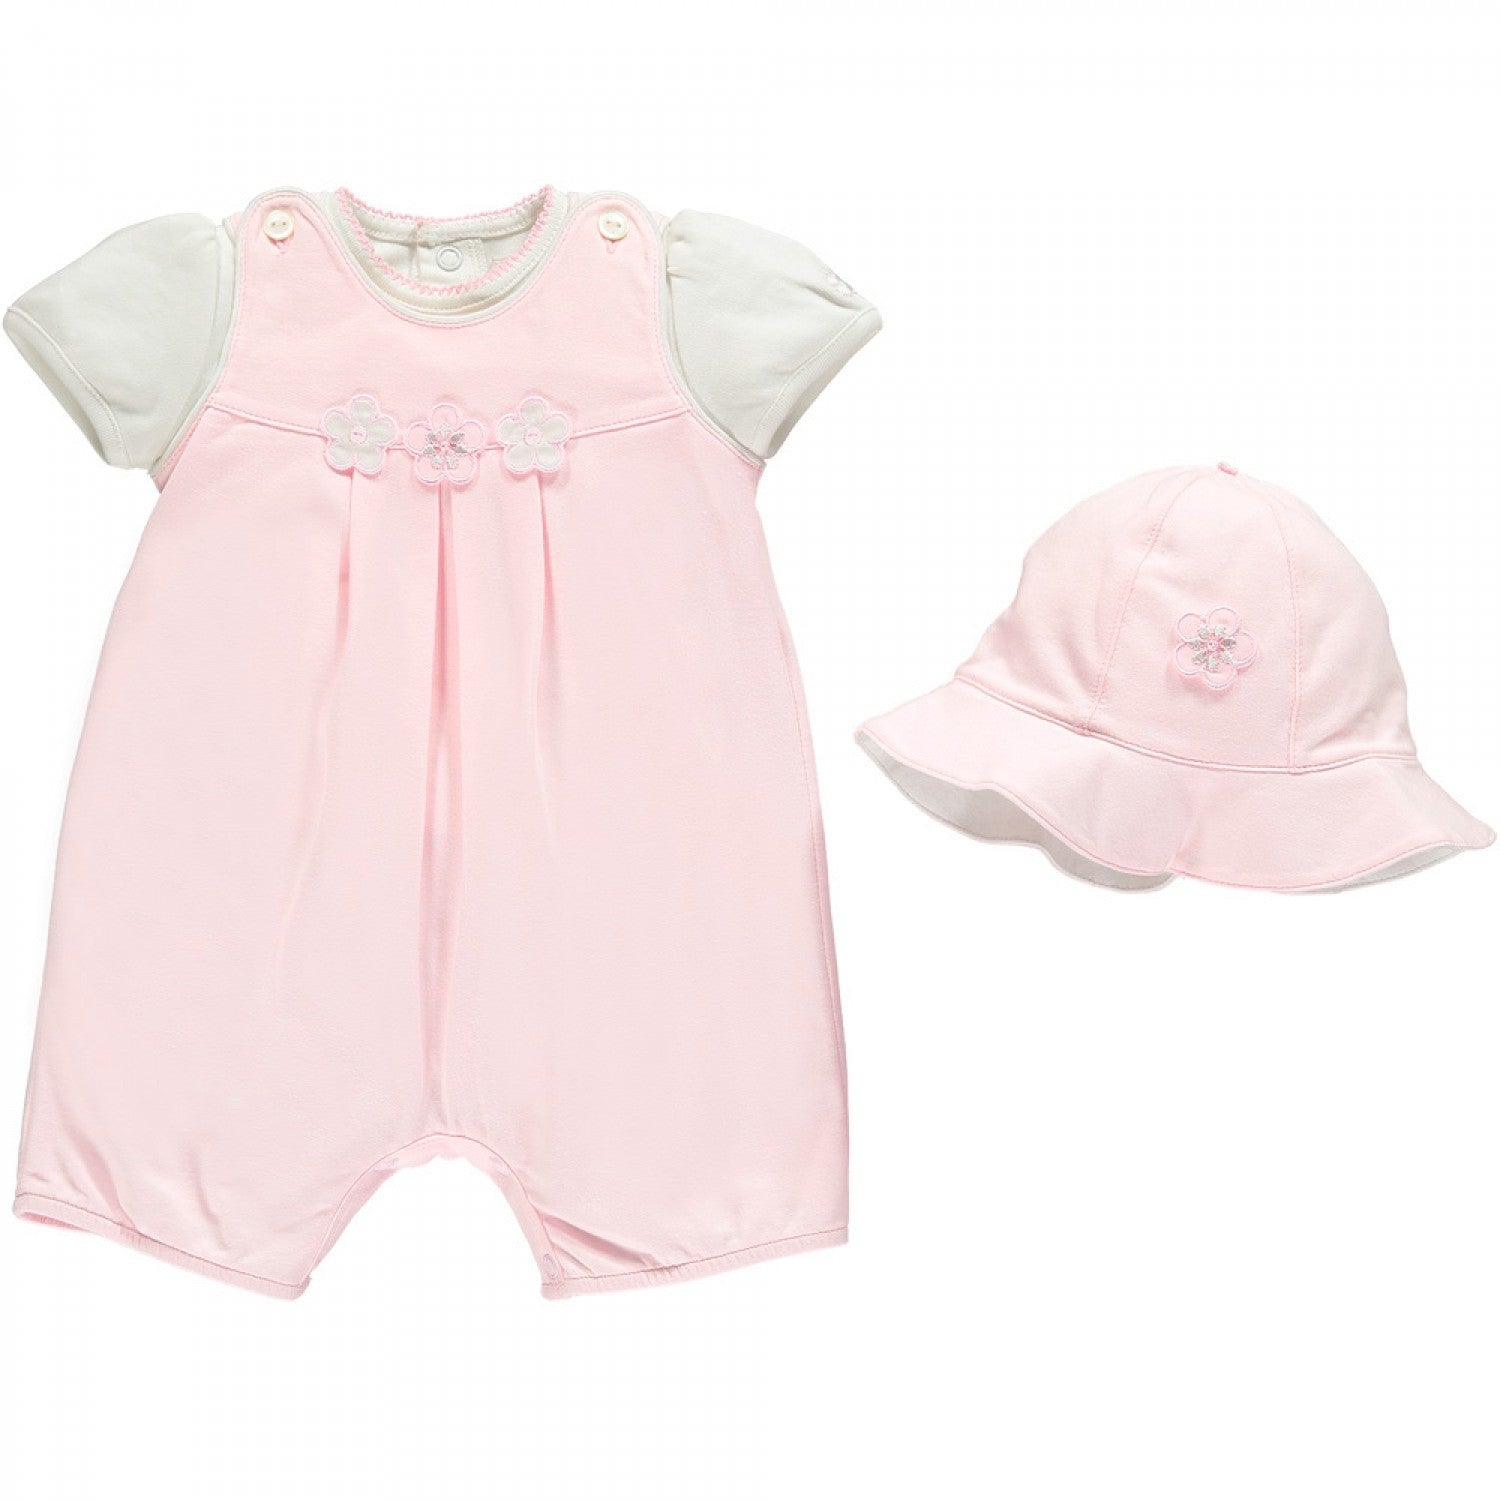 Emile et Rose Kerrie Girls Romper Set with Flowers & Hat